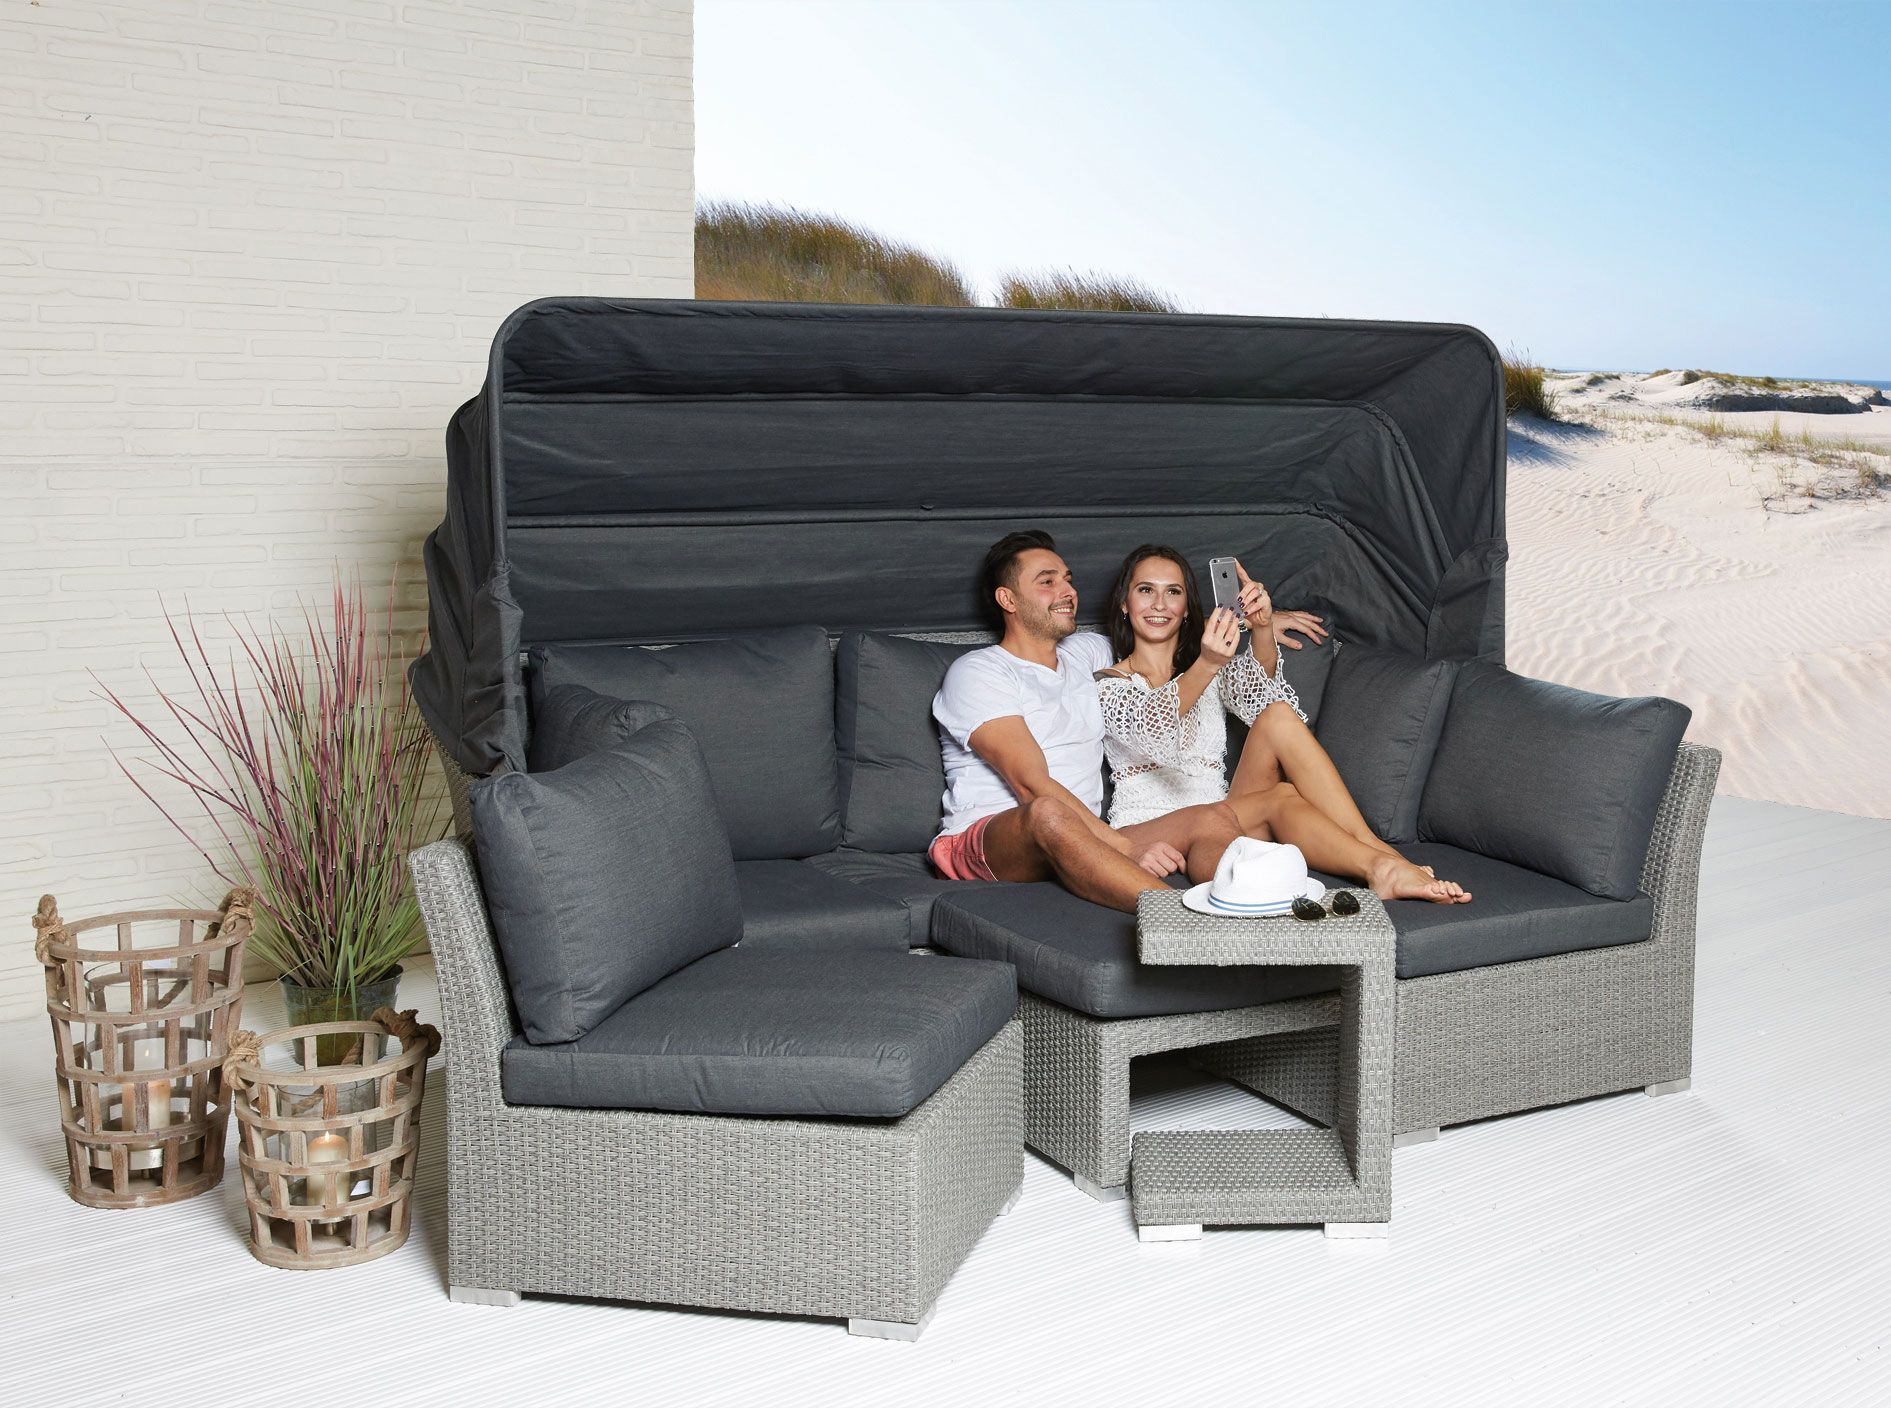 xl sonneninsel set 5 teilig strandkorb strandmuschel muschel set polyrattan grau strandmuschel. Black Bedroom Furniture Sets. Home Design Ideas